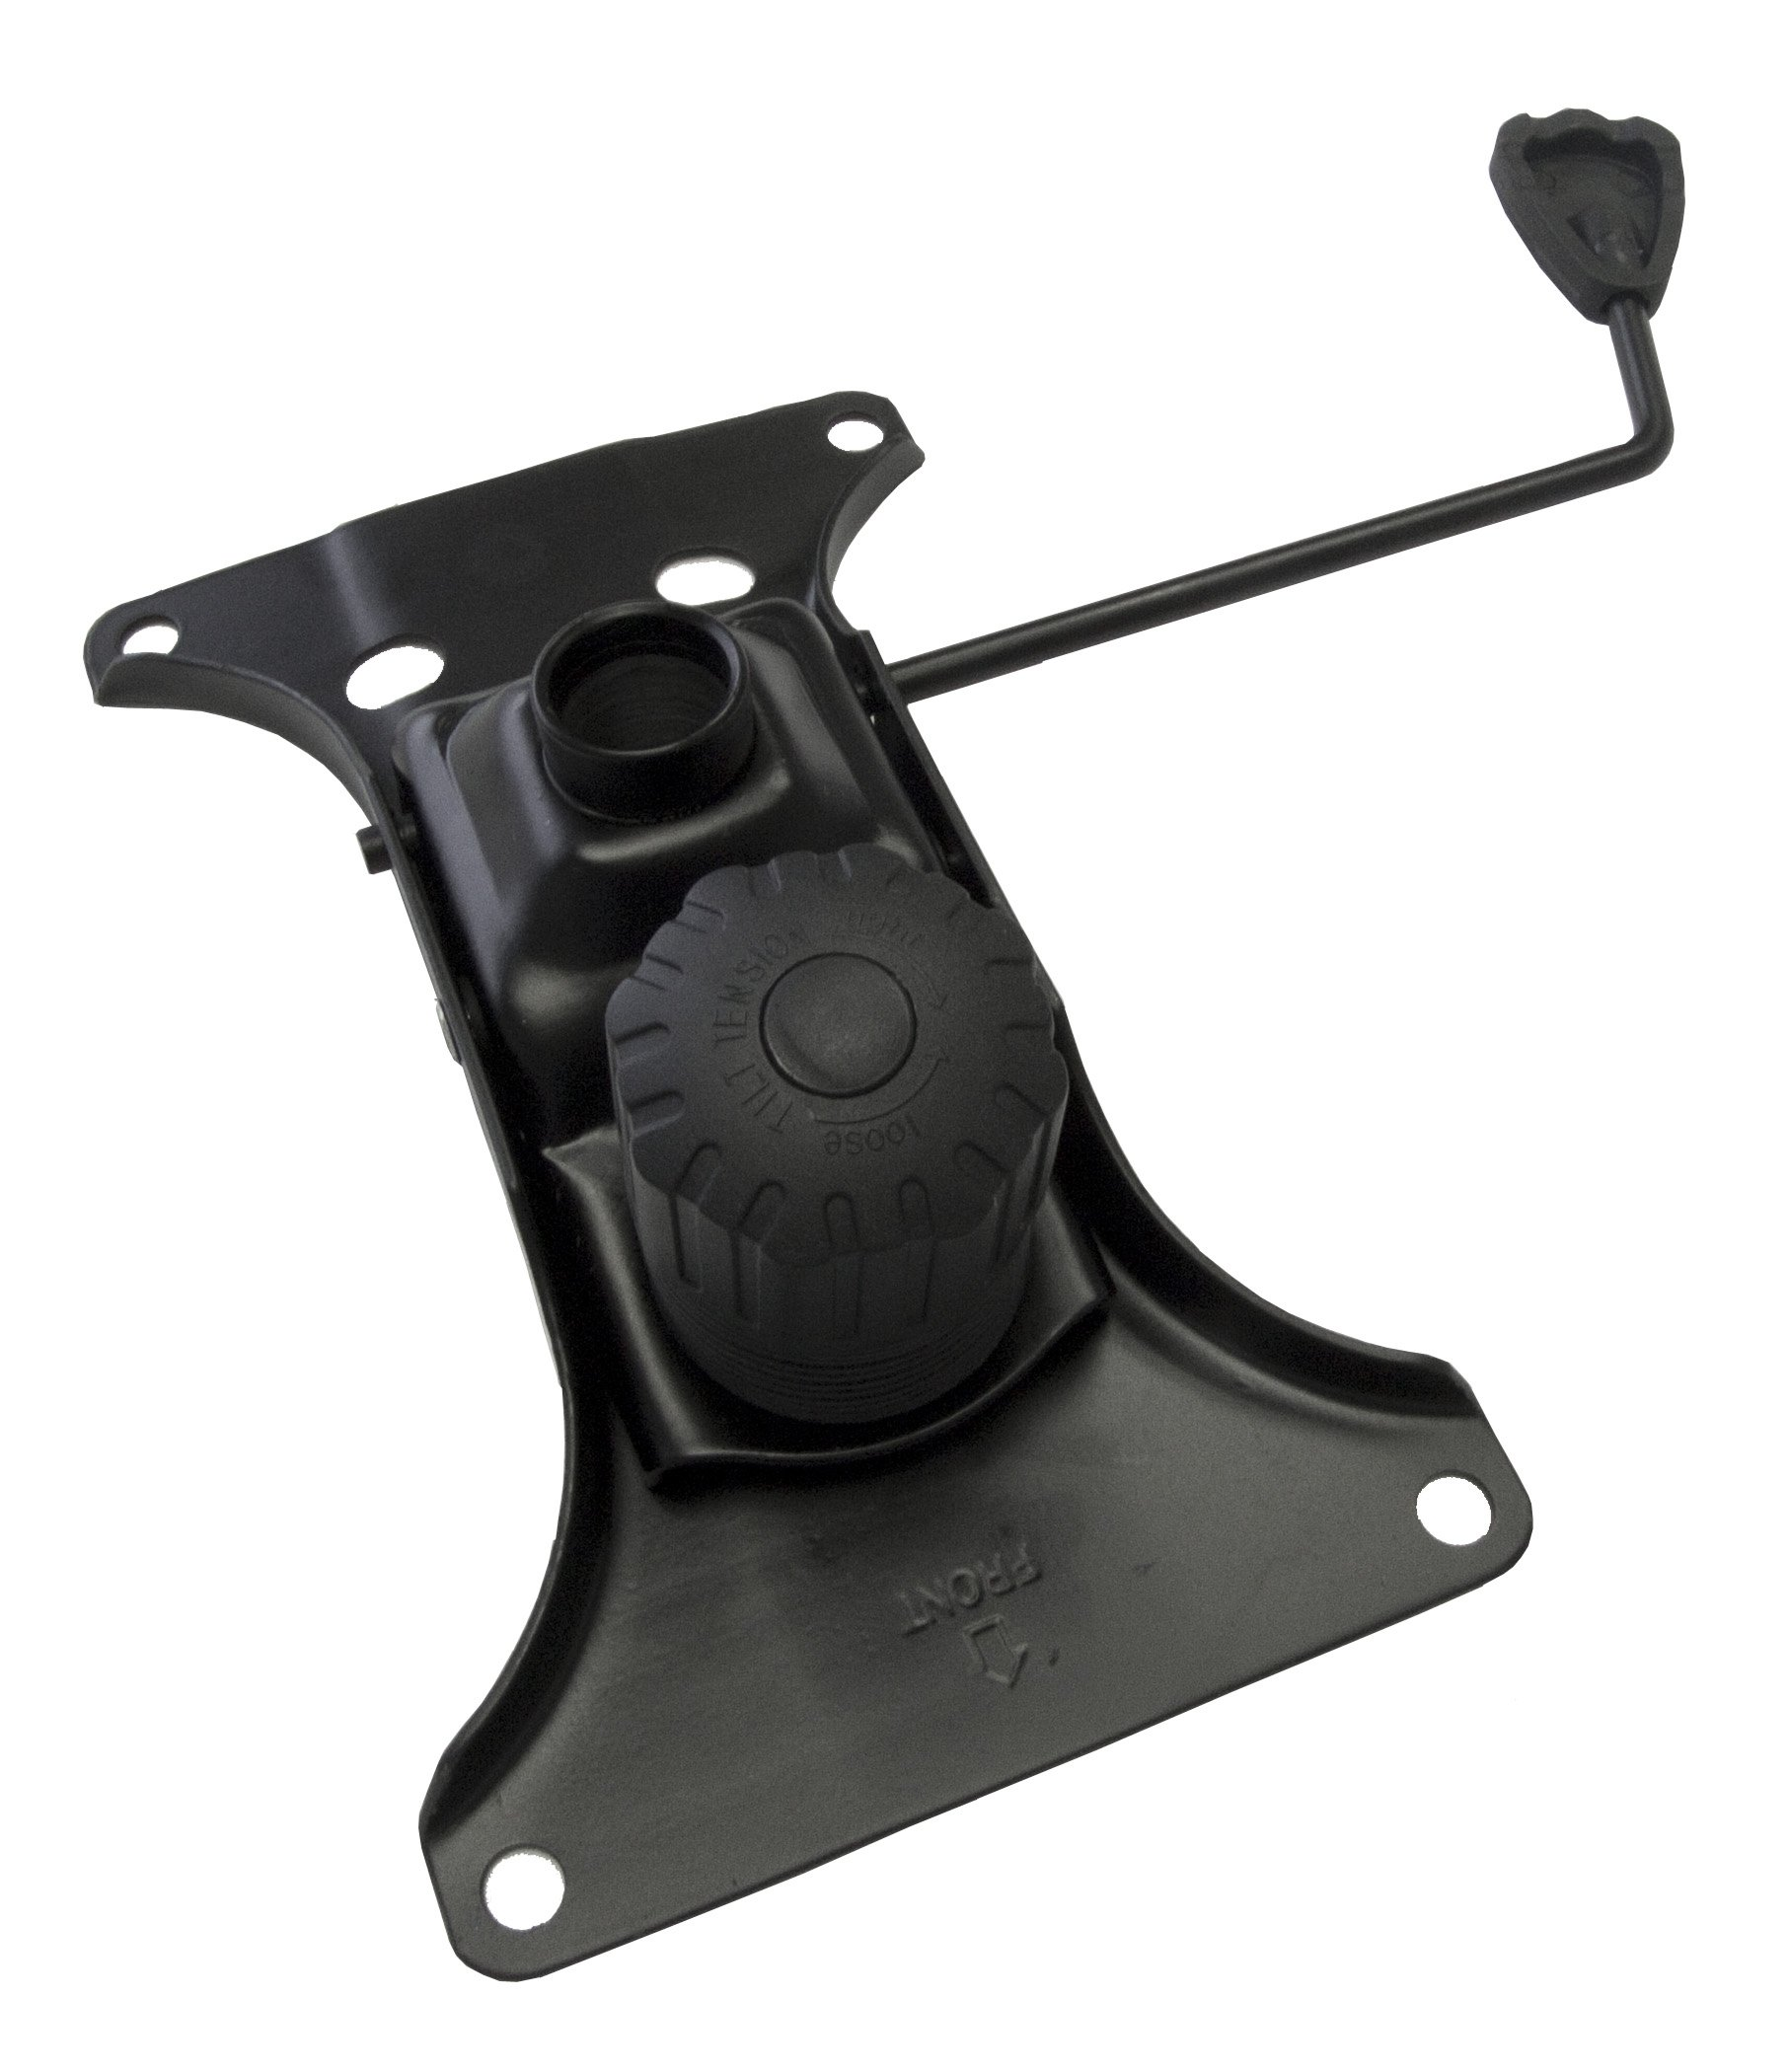 Replacement Office Chair Tilt Control Mechanism - S2979 by chairpartsonline